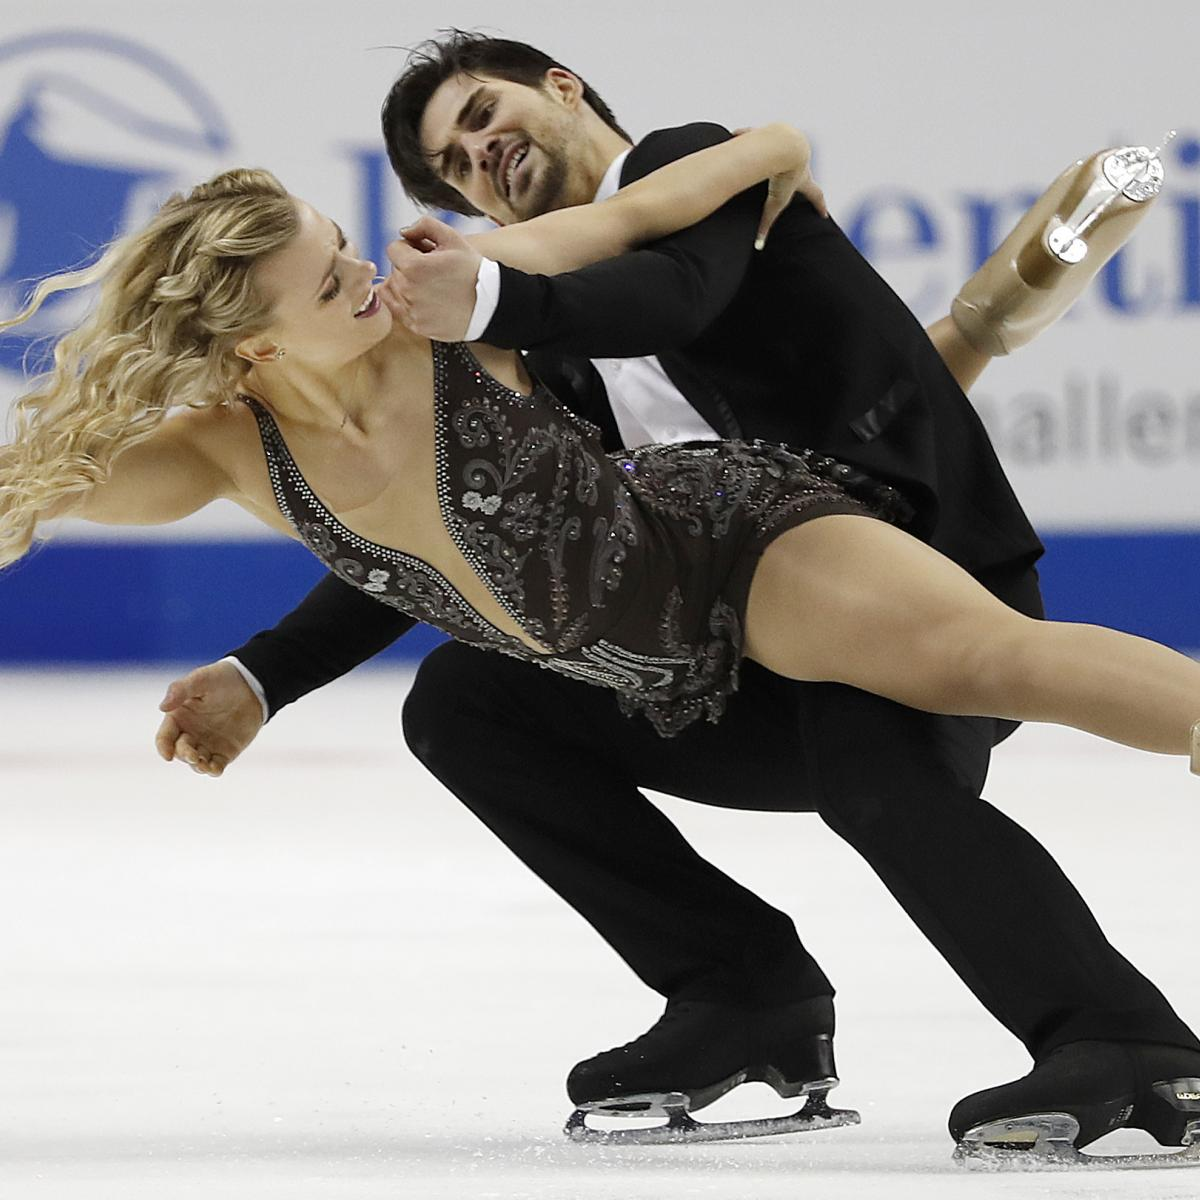 US Figure Skating Championships 2018: Final Results, Highlights and Reaction